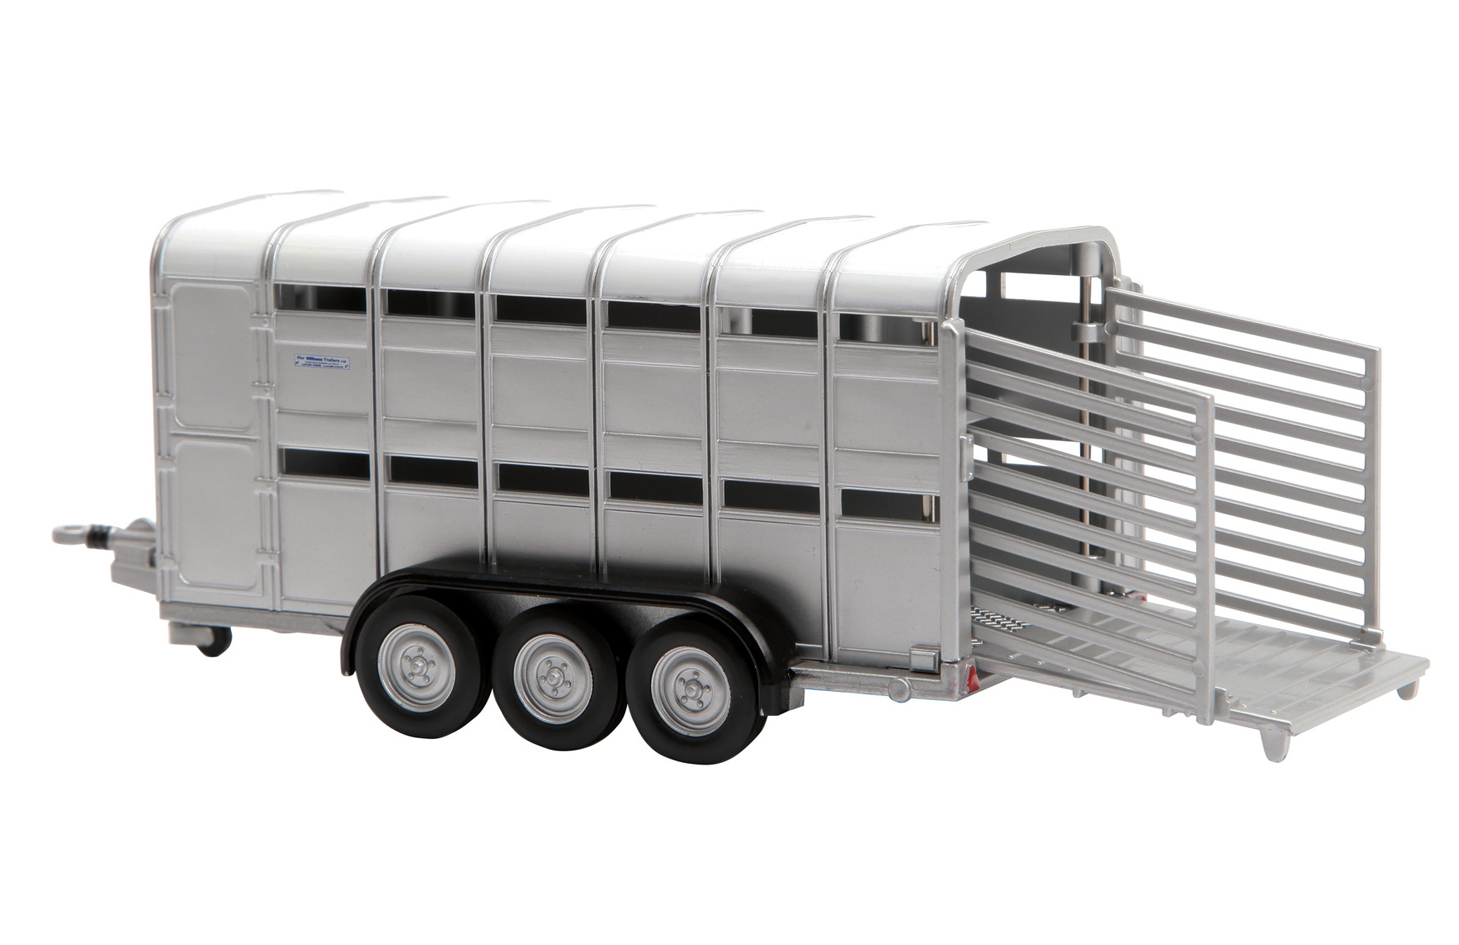 britains 40710a1 ifor williams livestock trailer. Black Bedroom Furniture Sets. Home Design Ideas